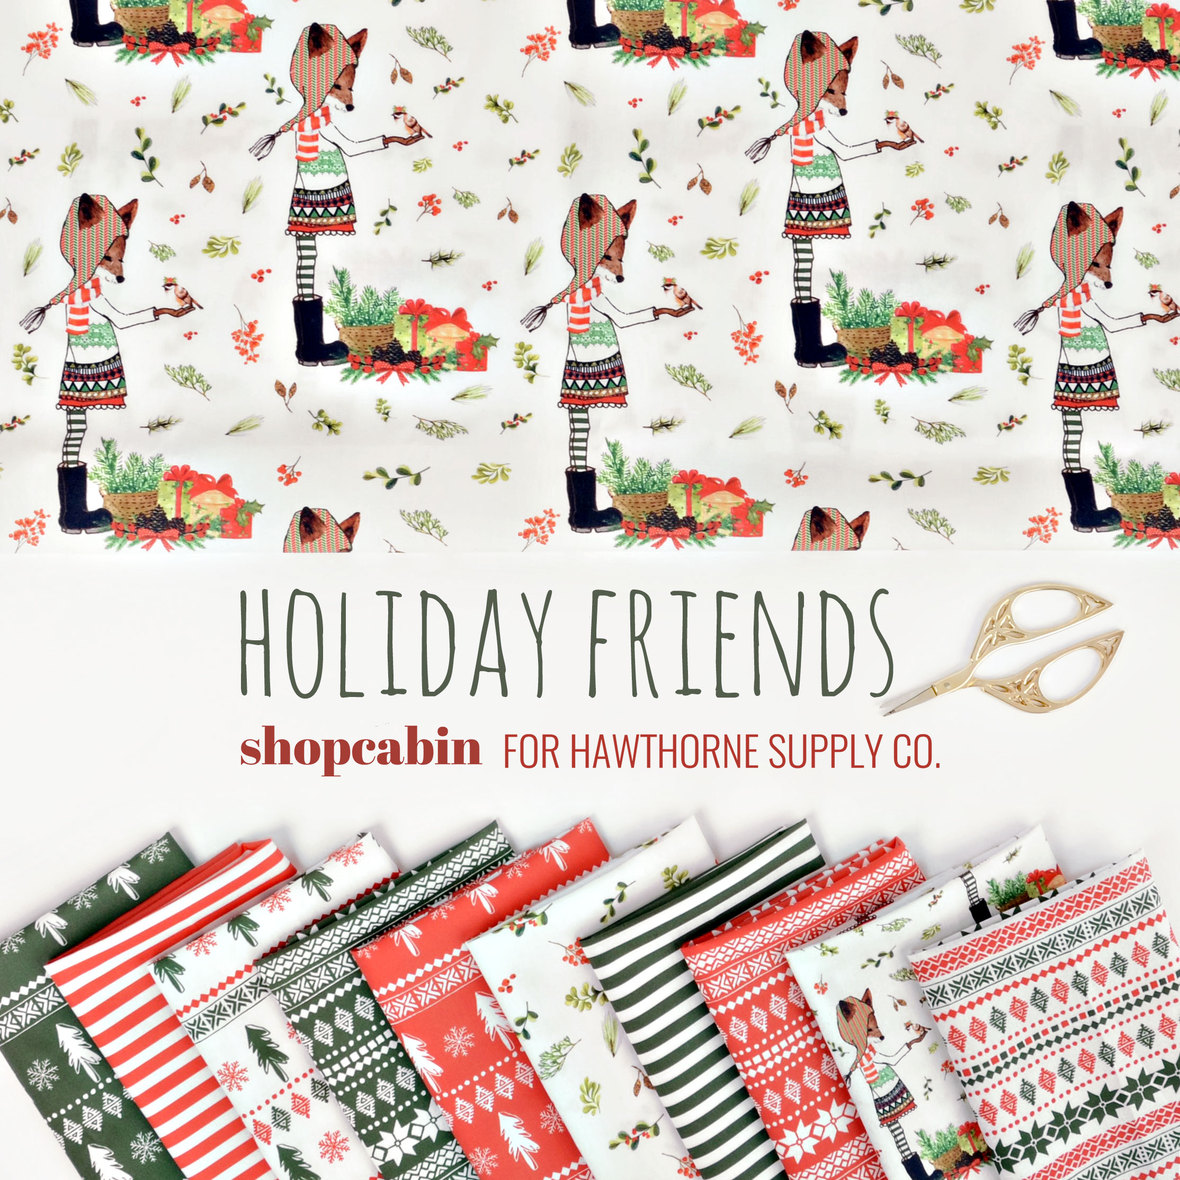 Shopcabin Holiday Friends Fabric at Hawthorne Supply Co